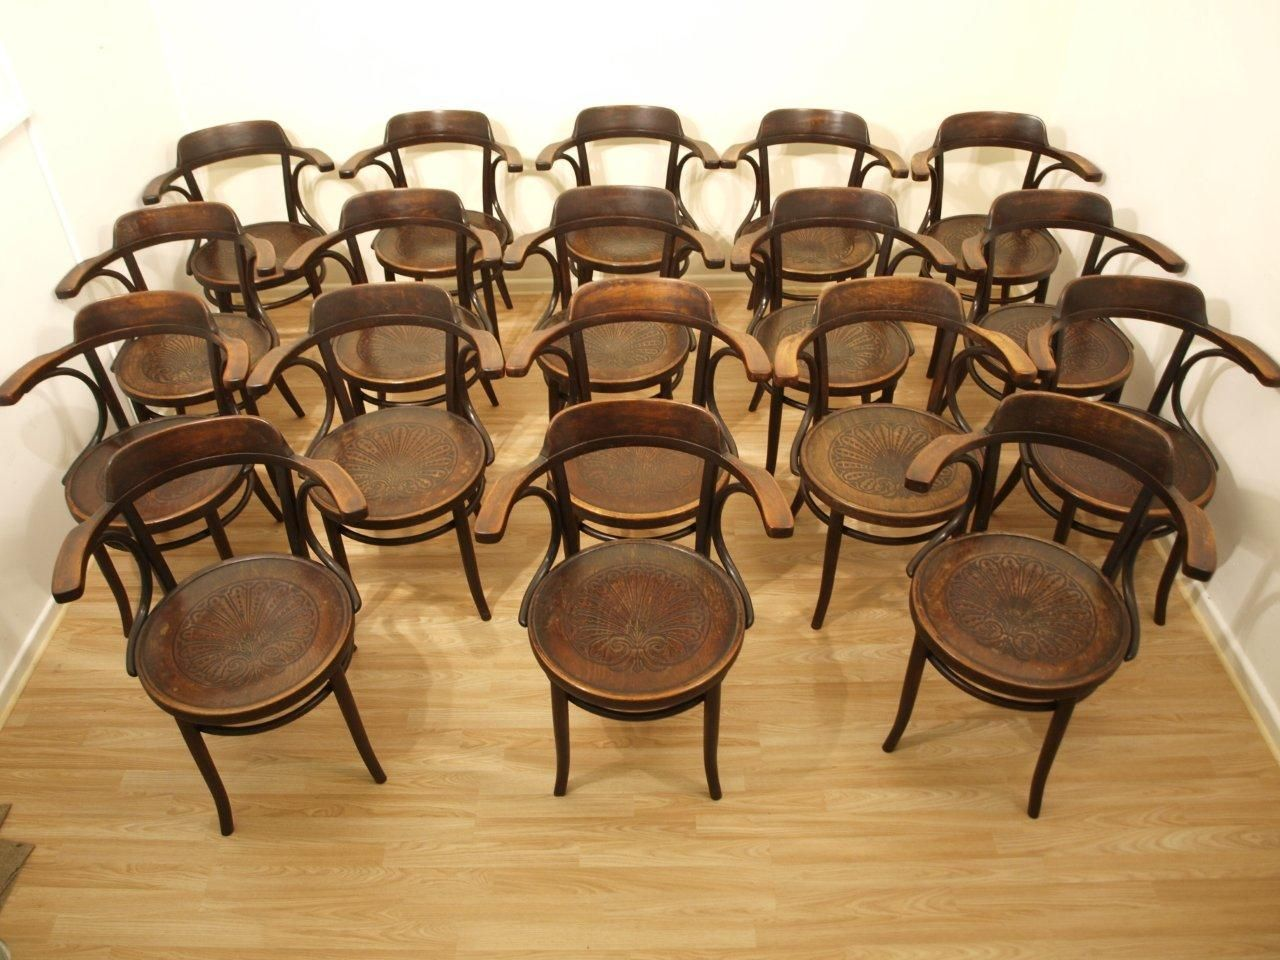 I Love Antique Bentwood Chairs Wish They Didn T Creak So Much